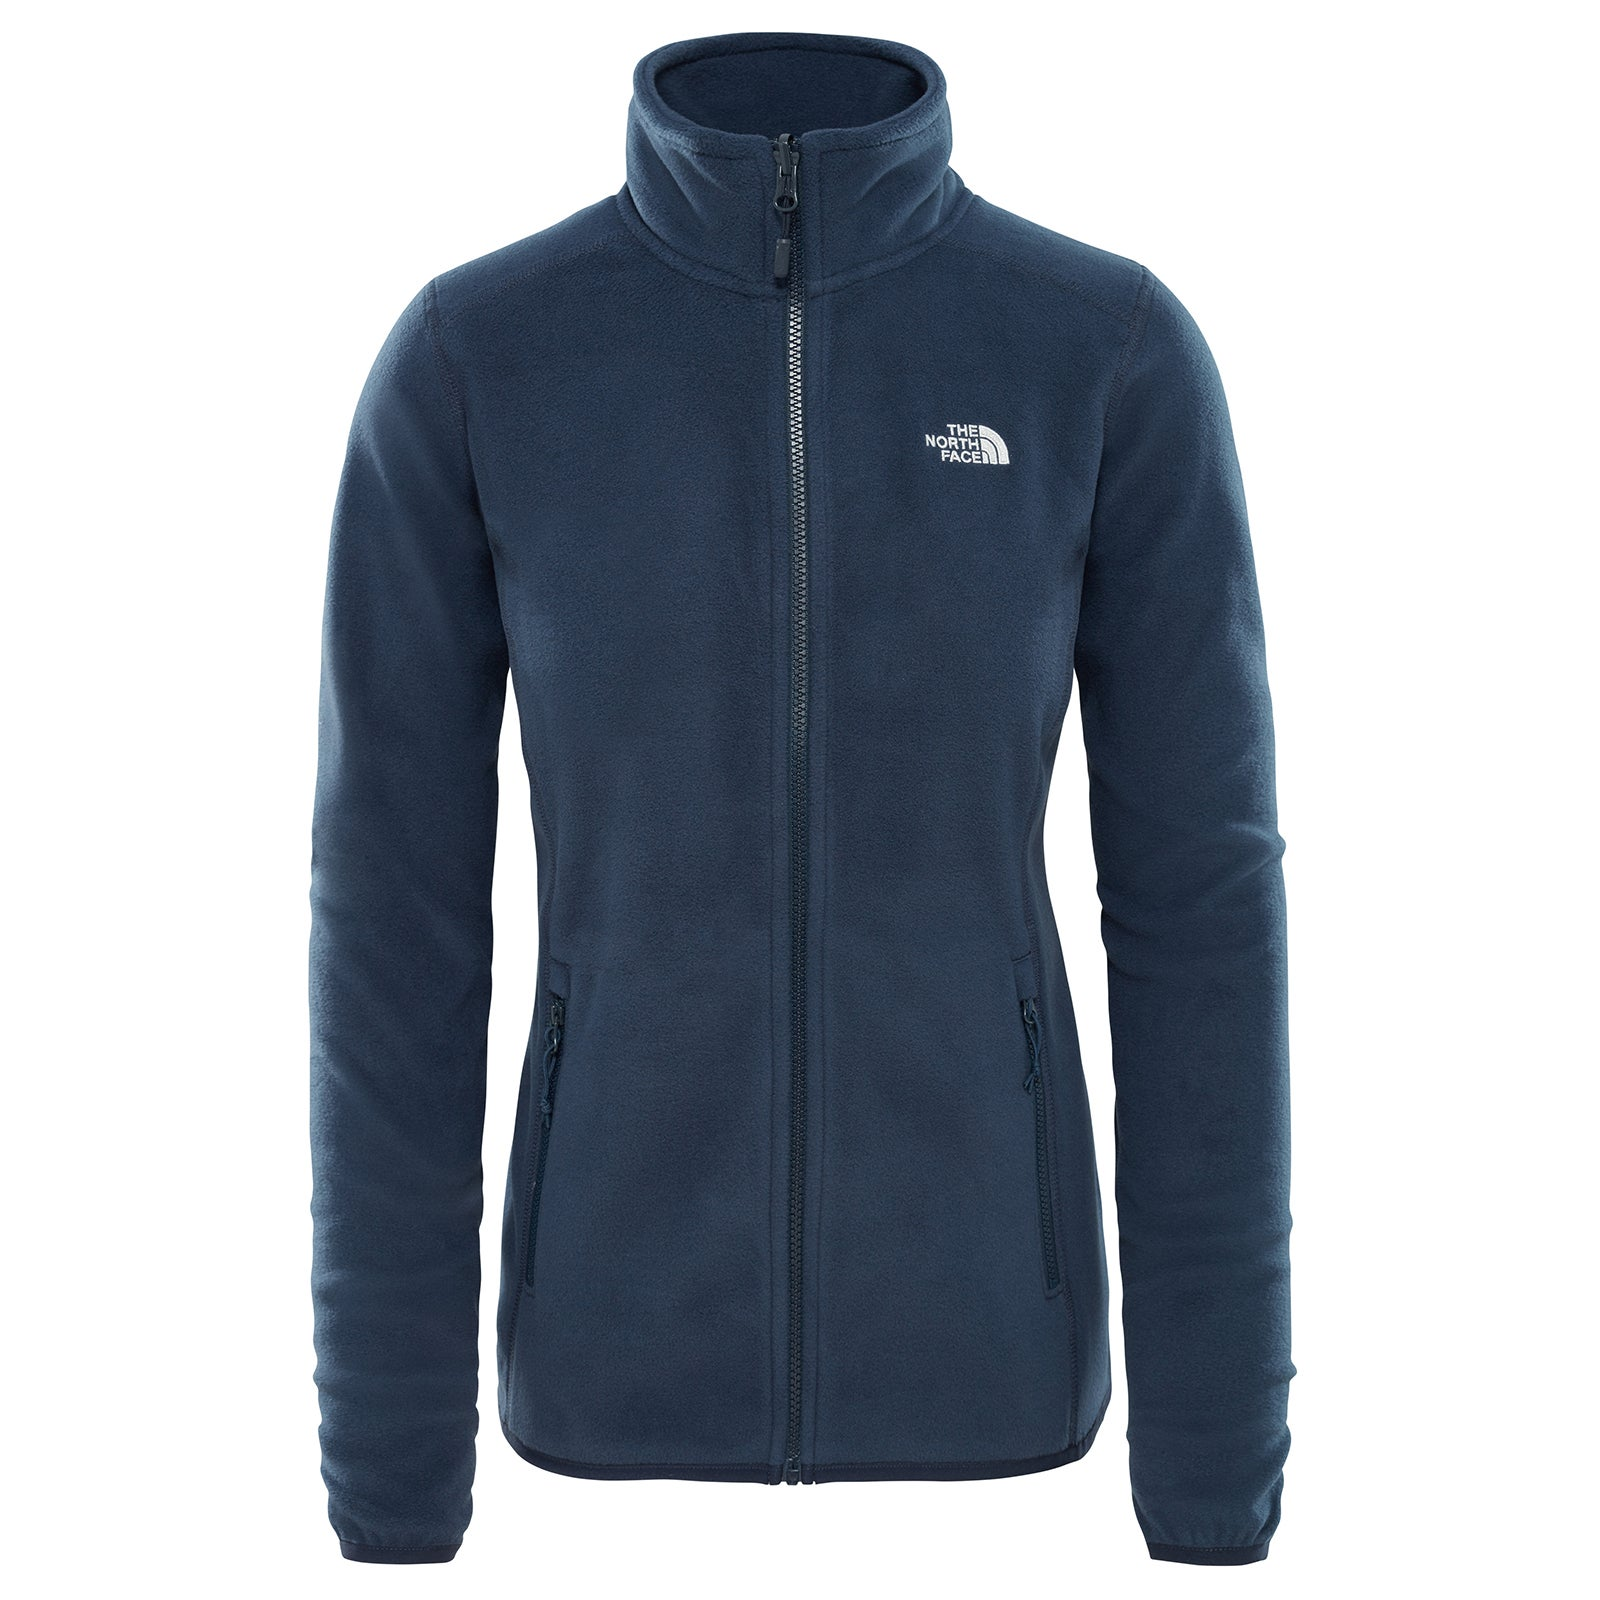 The North Face 100 Glacier Full Zip Mens Jacket Fleece Urban Navy All Sizes